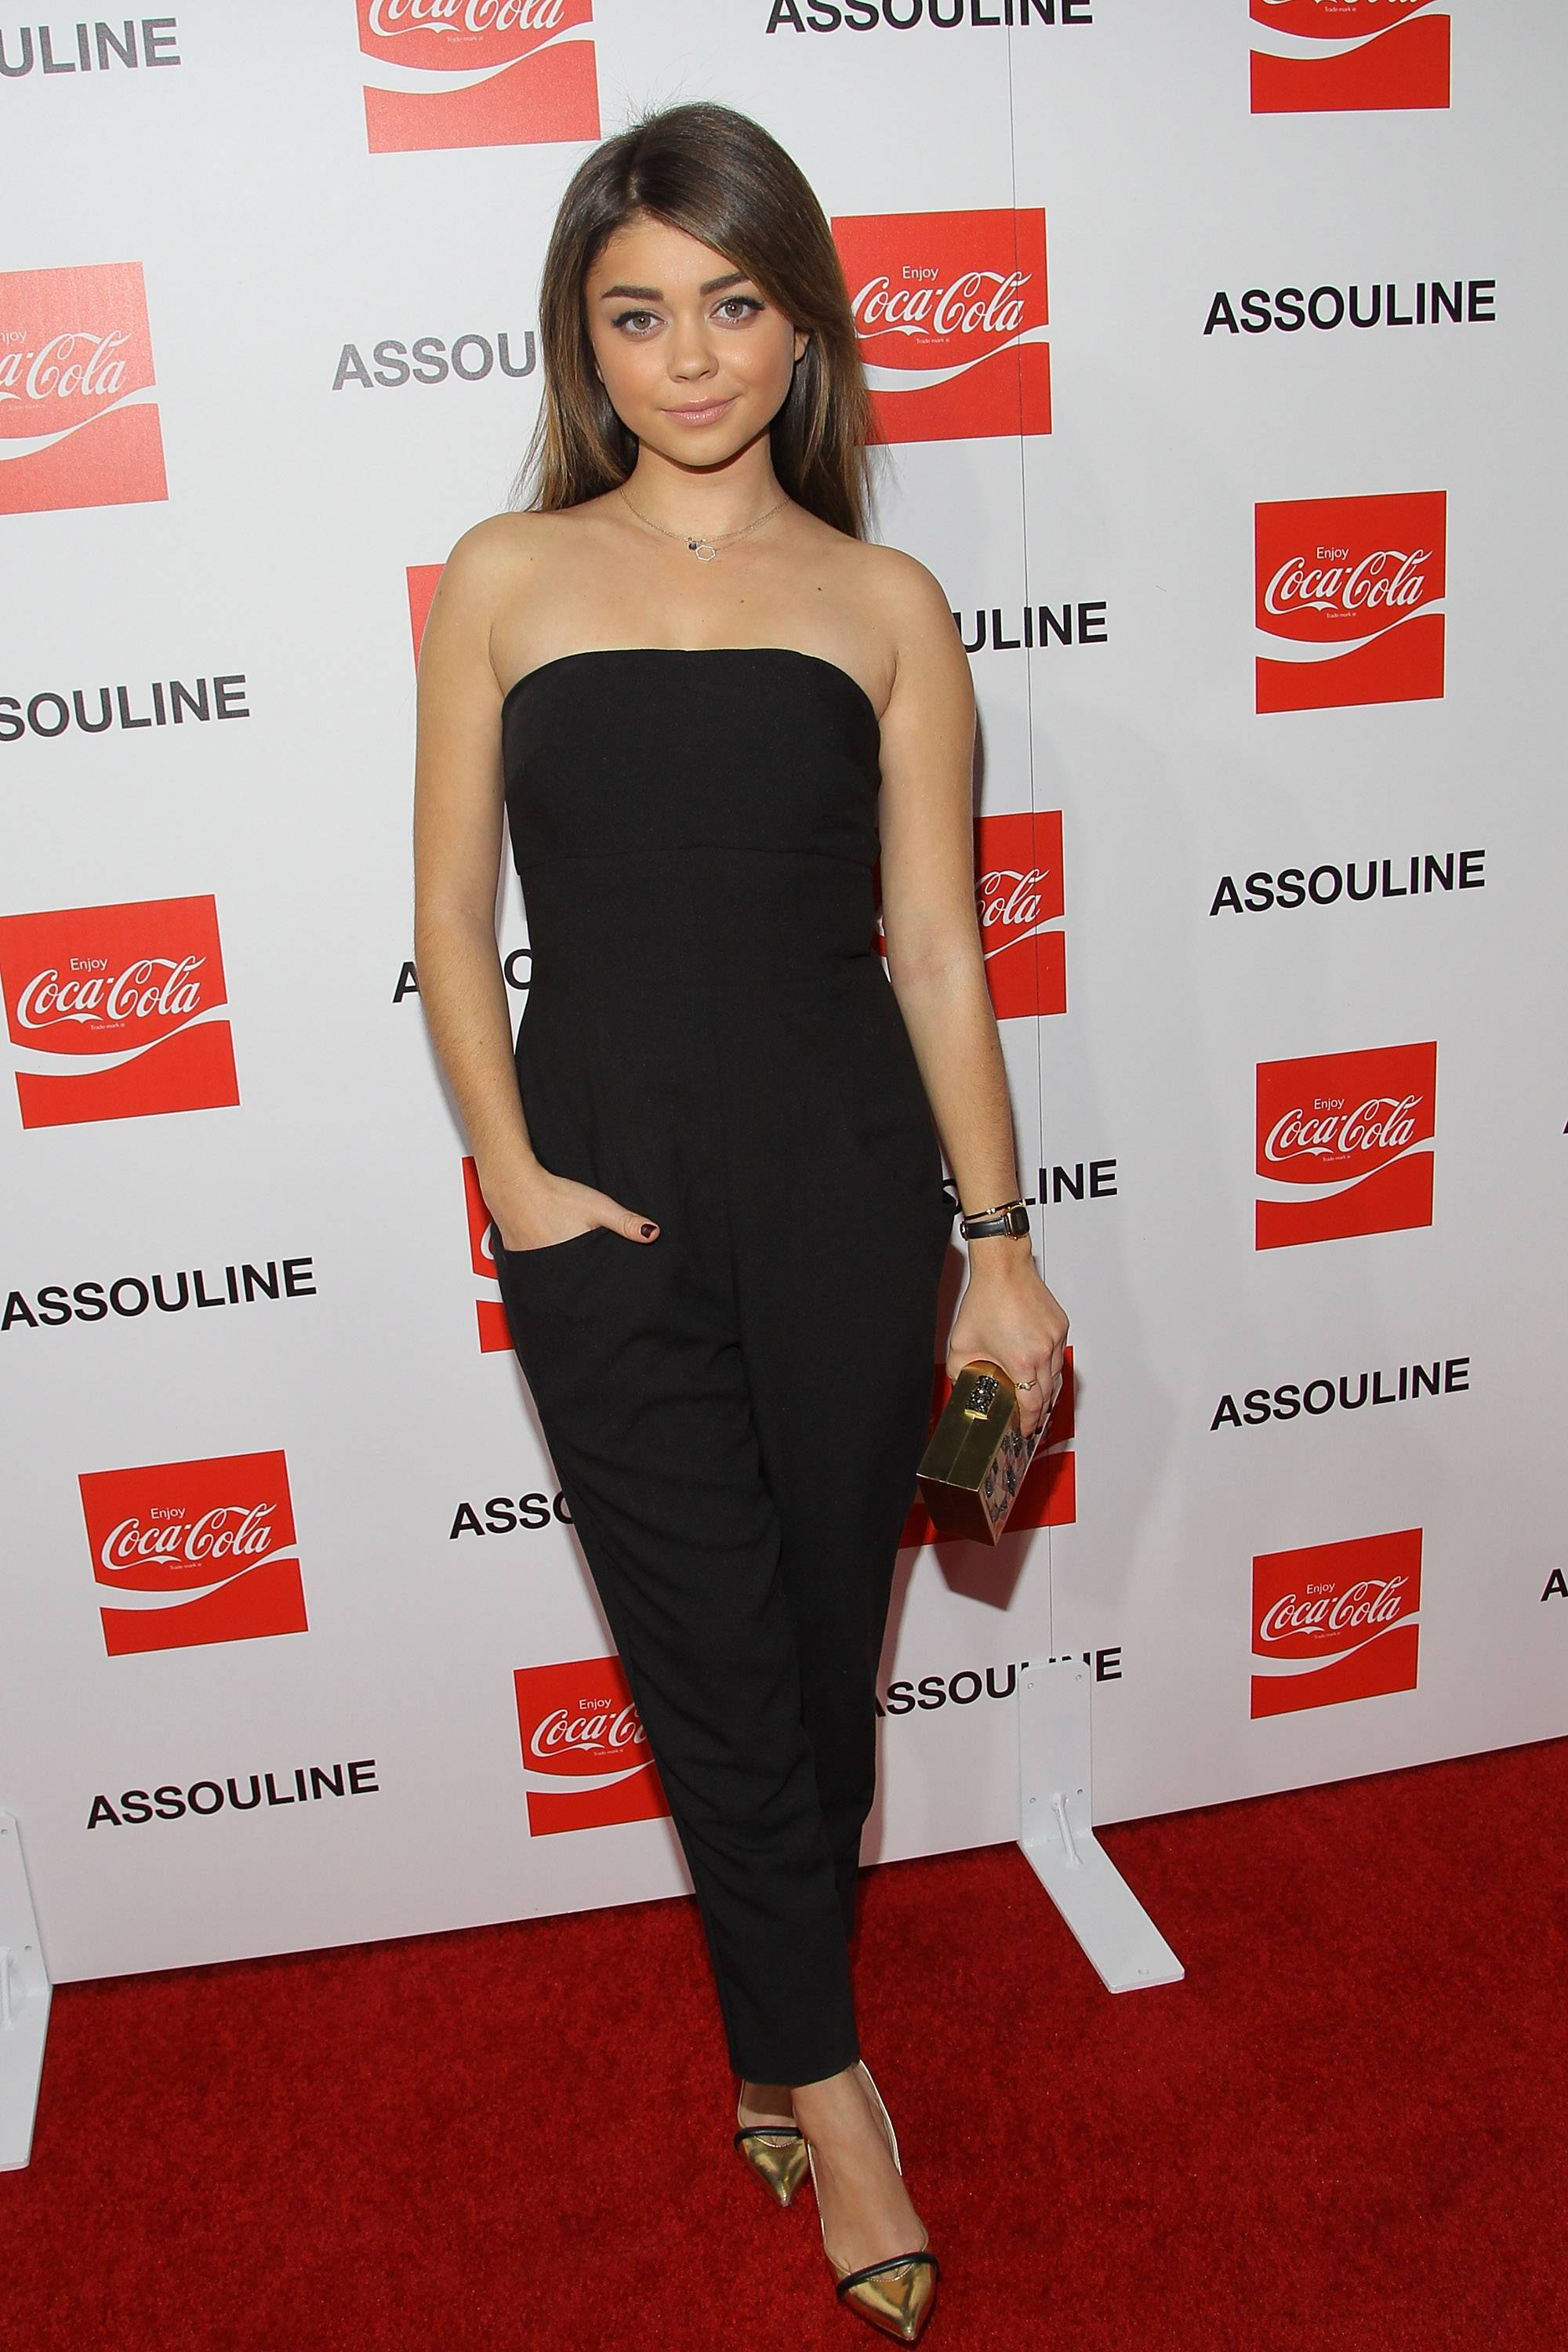 Assouline And Coca-Cola Celebrate The Launch Of The Assouline Memoire Set - Coca-Cola: Film, Music & Sports At Siren Studios In Los Angeles